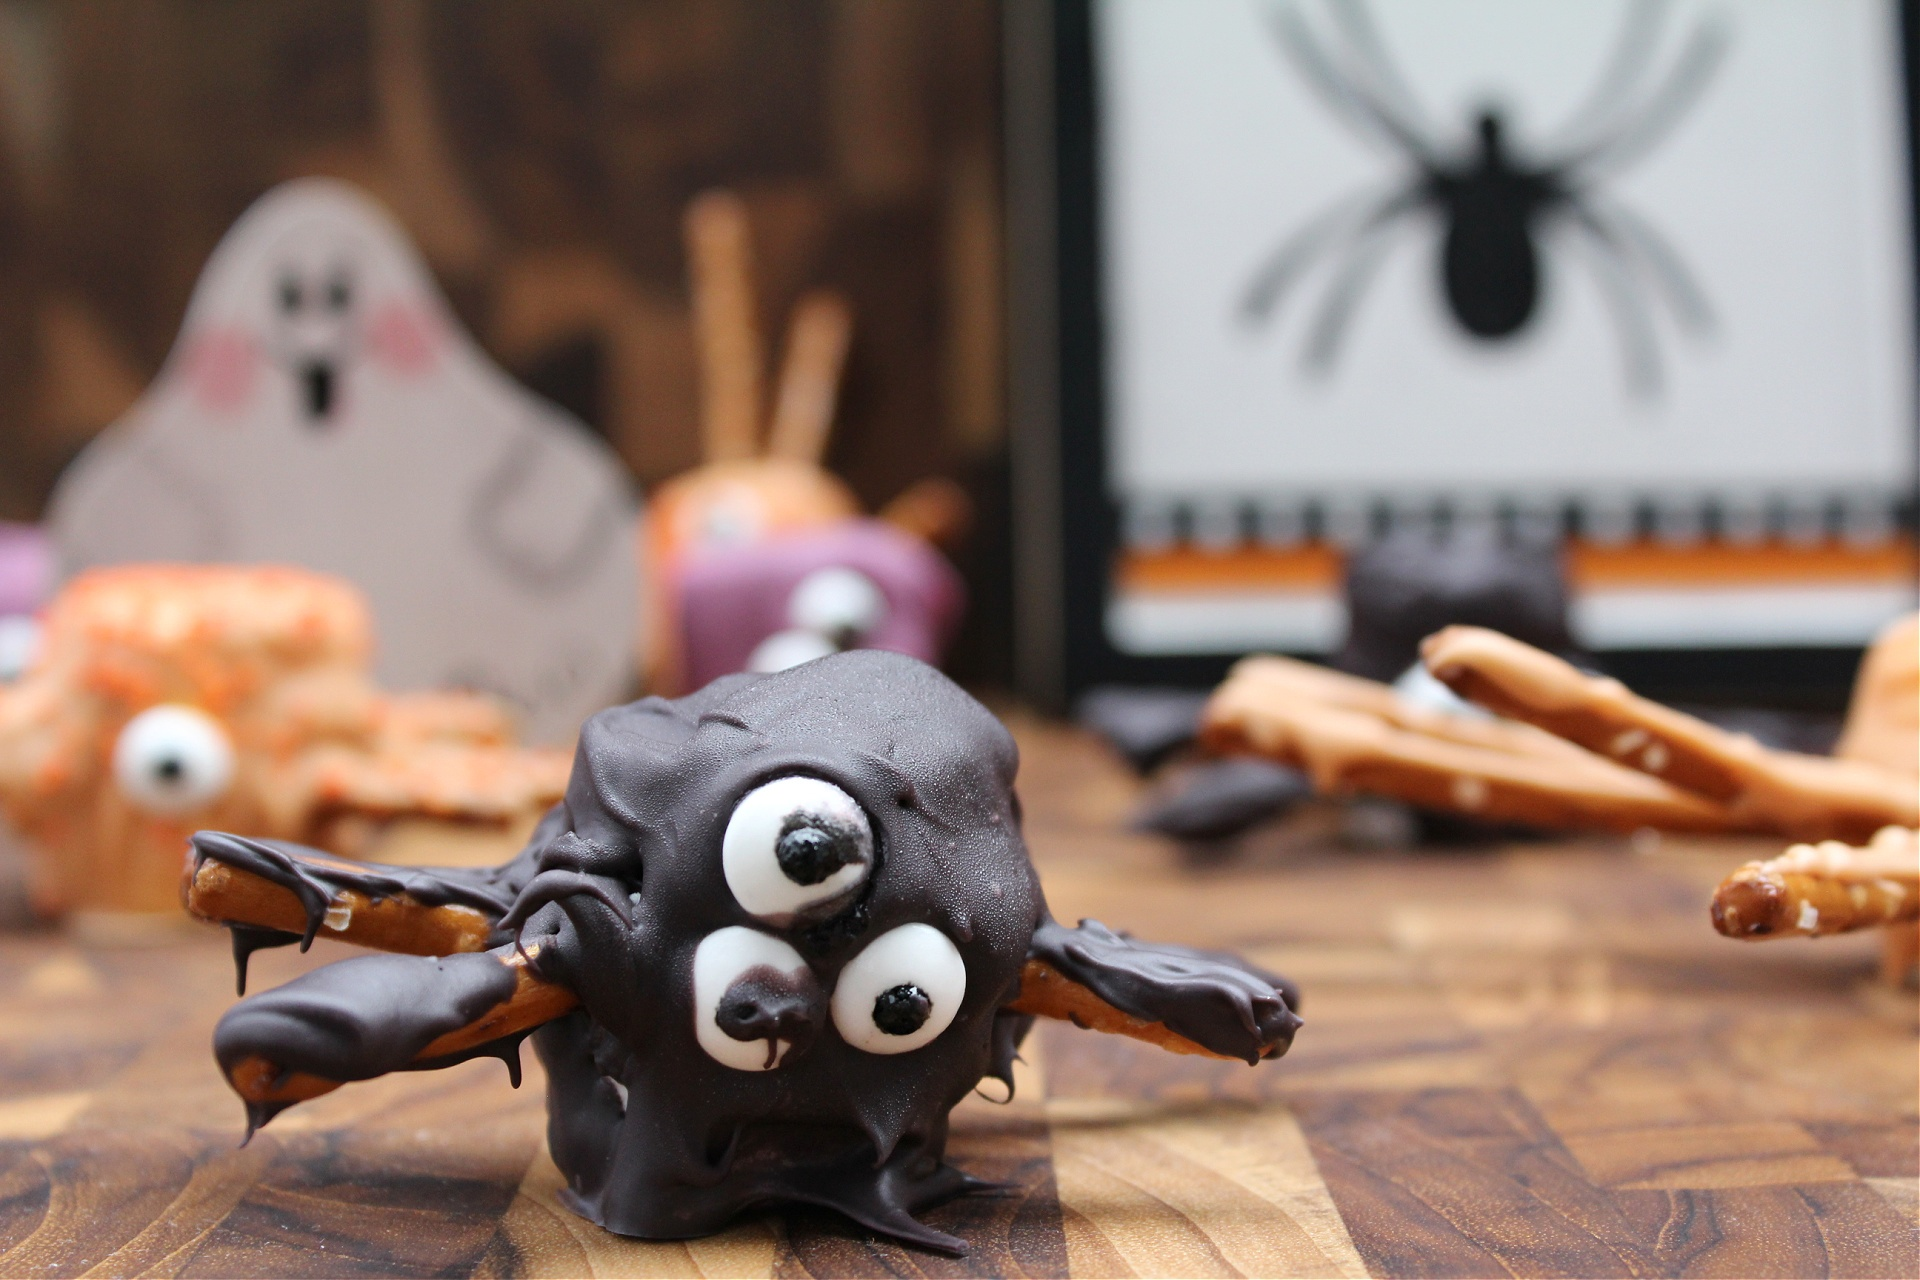 Halloween Spiders made with marshmallows and pretzels